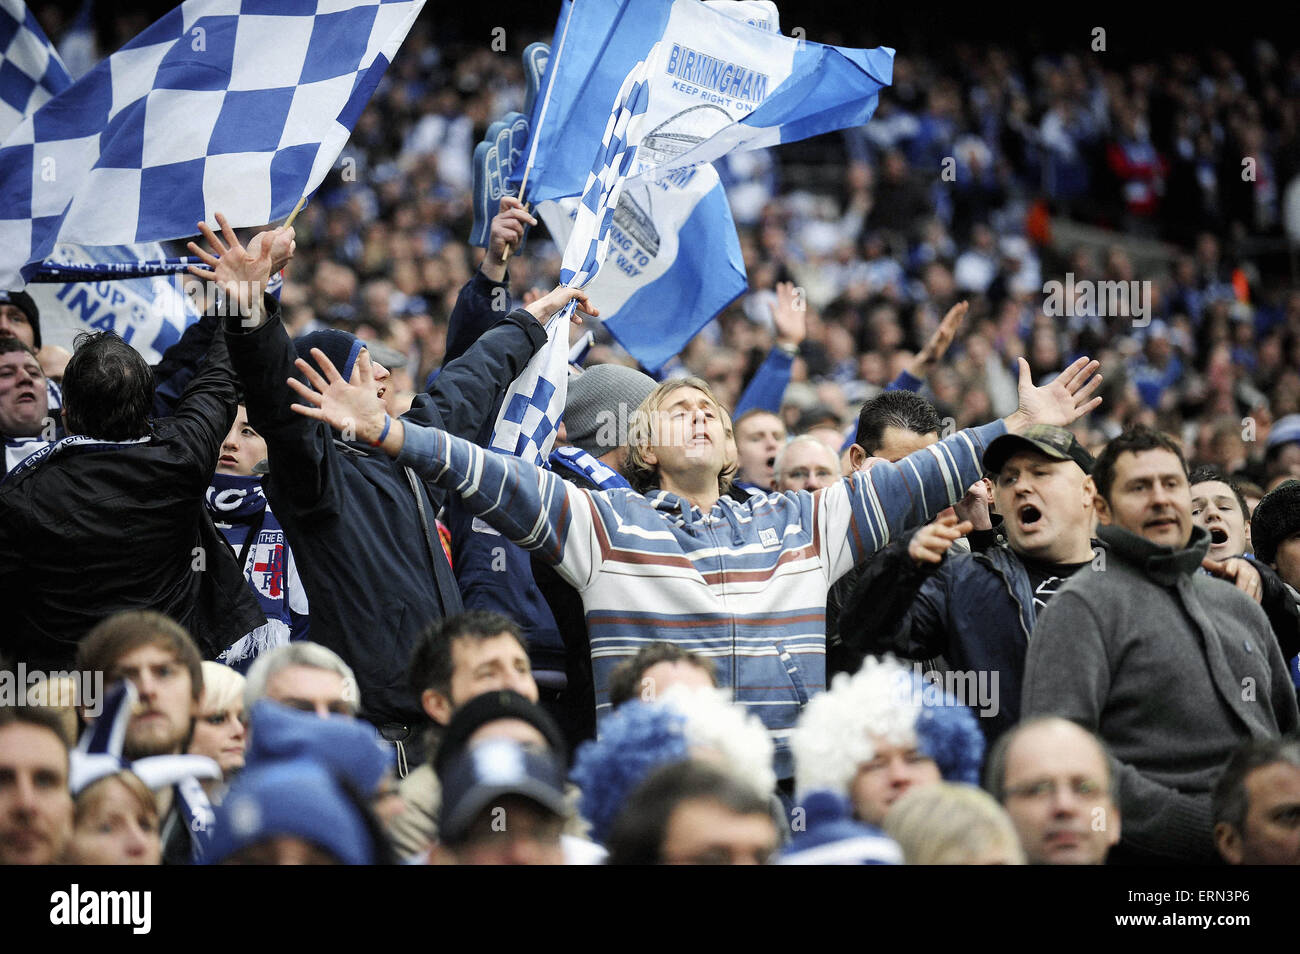 League Cup Final at Wembley Stadium. Birmingham City 2 v Arsenal 1. Birmingham fans in the crowd. 27th February - Stock Image